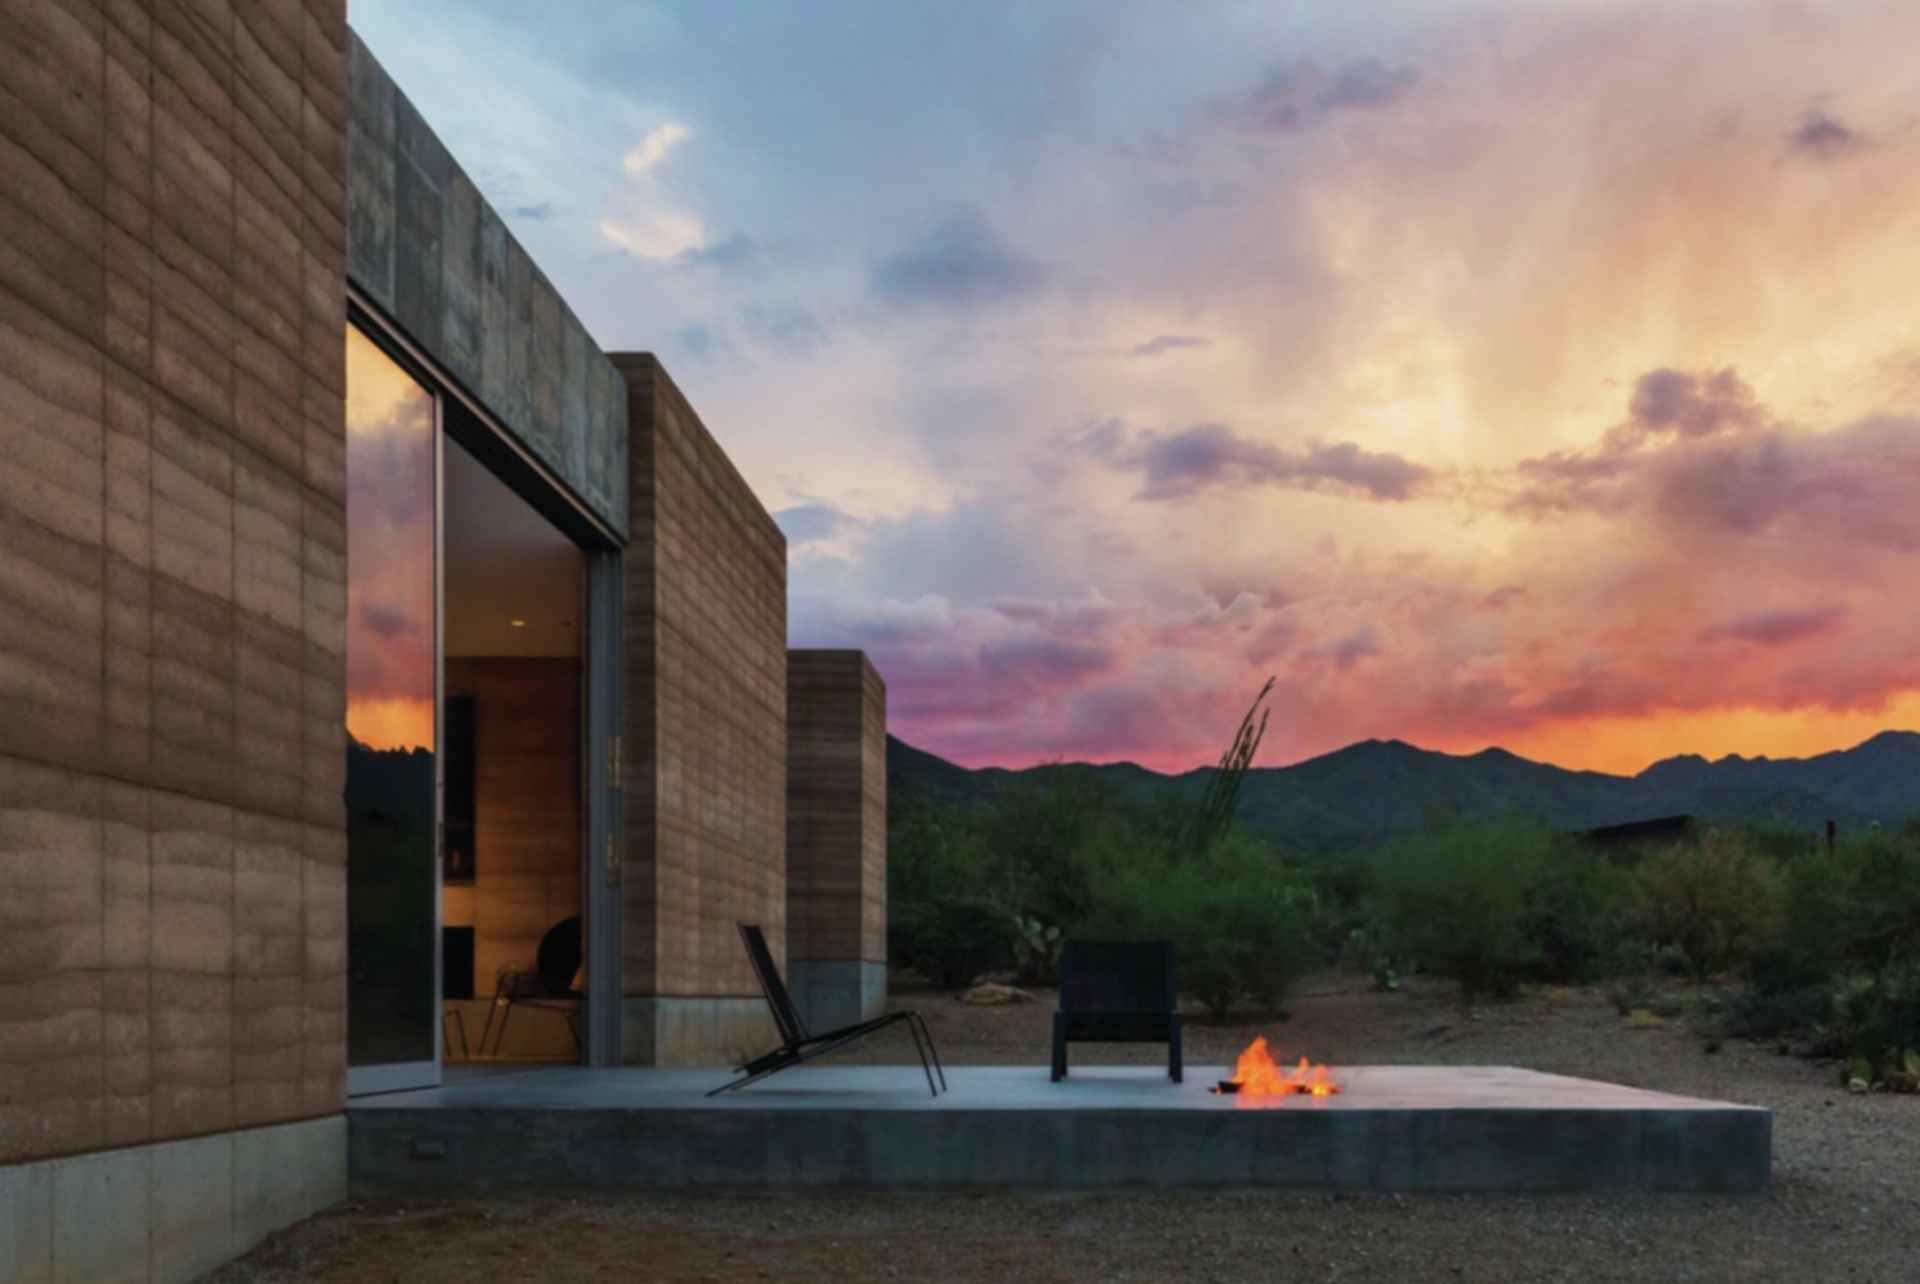 Tuscon Mountain Retreat - Exterior/Outdoor Area